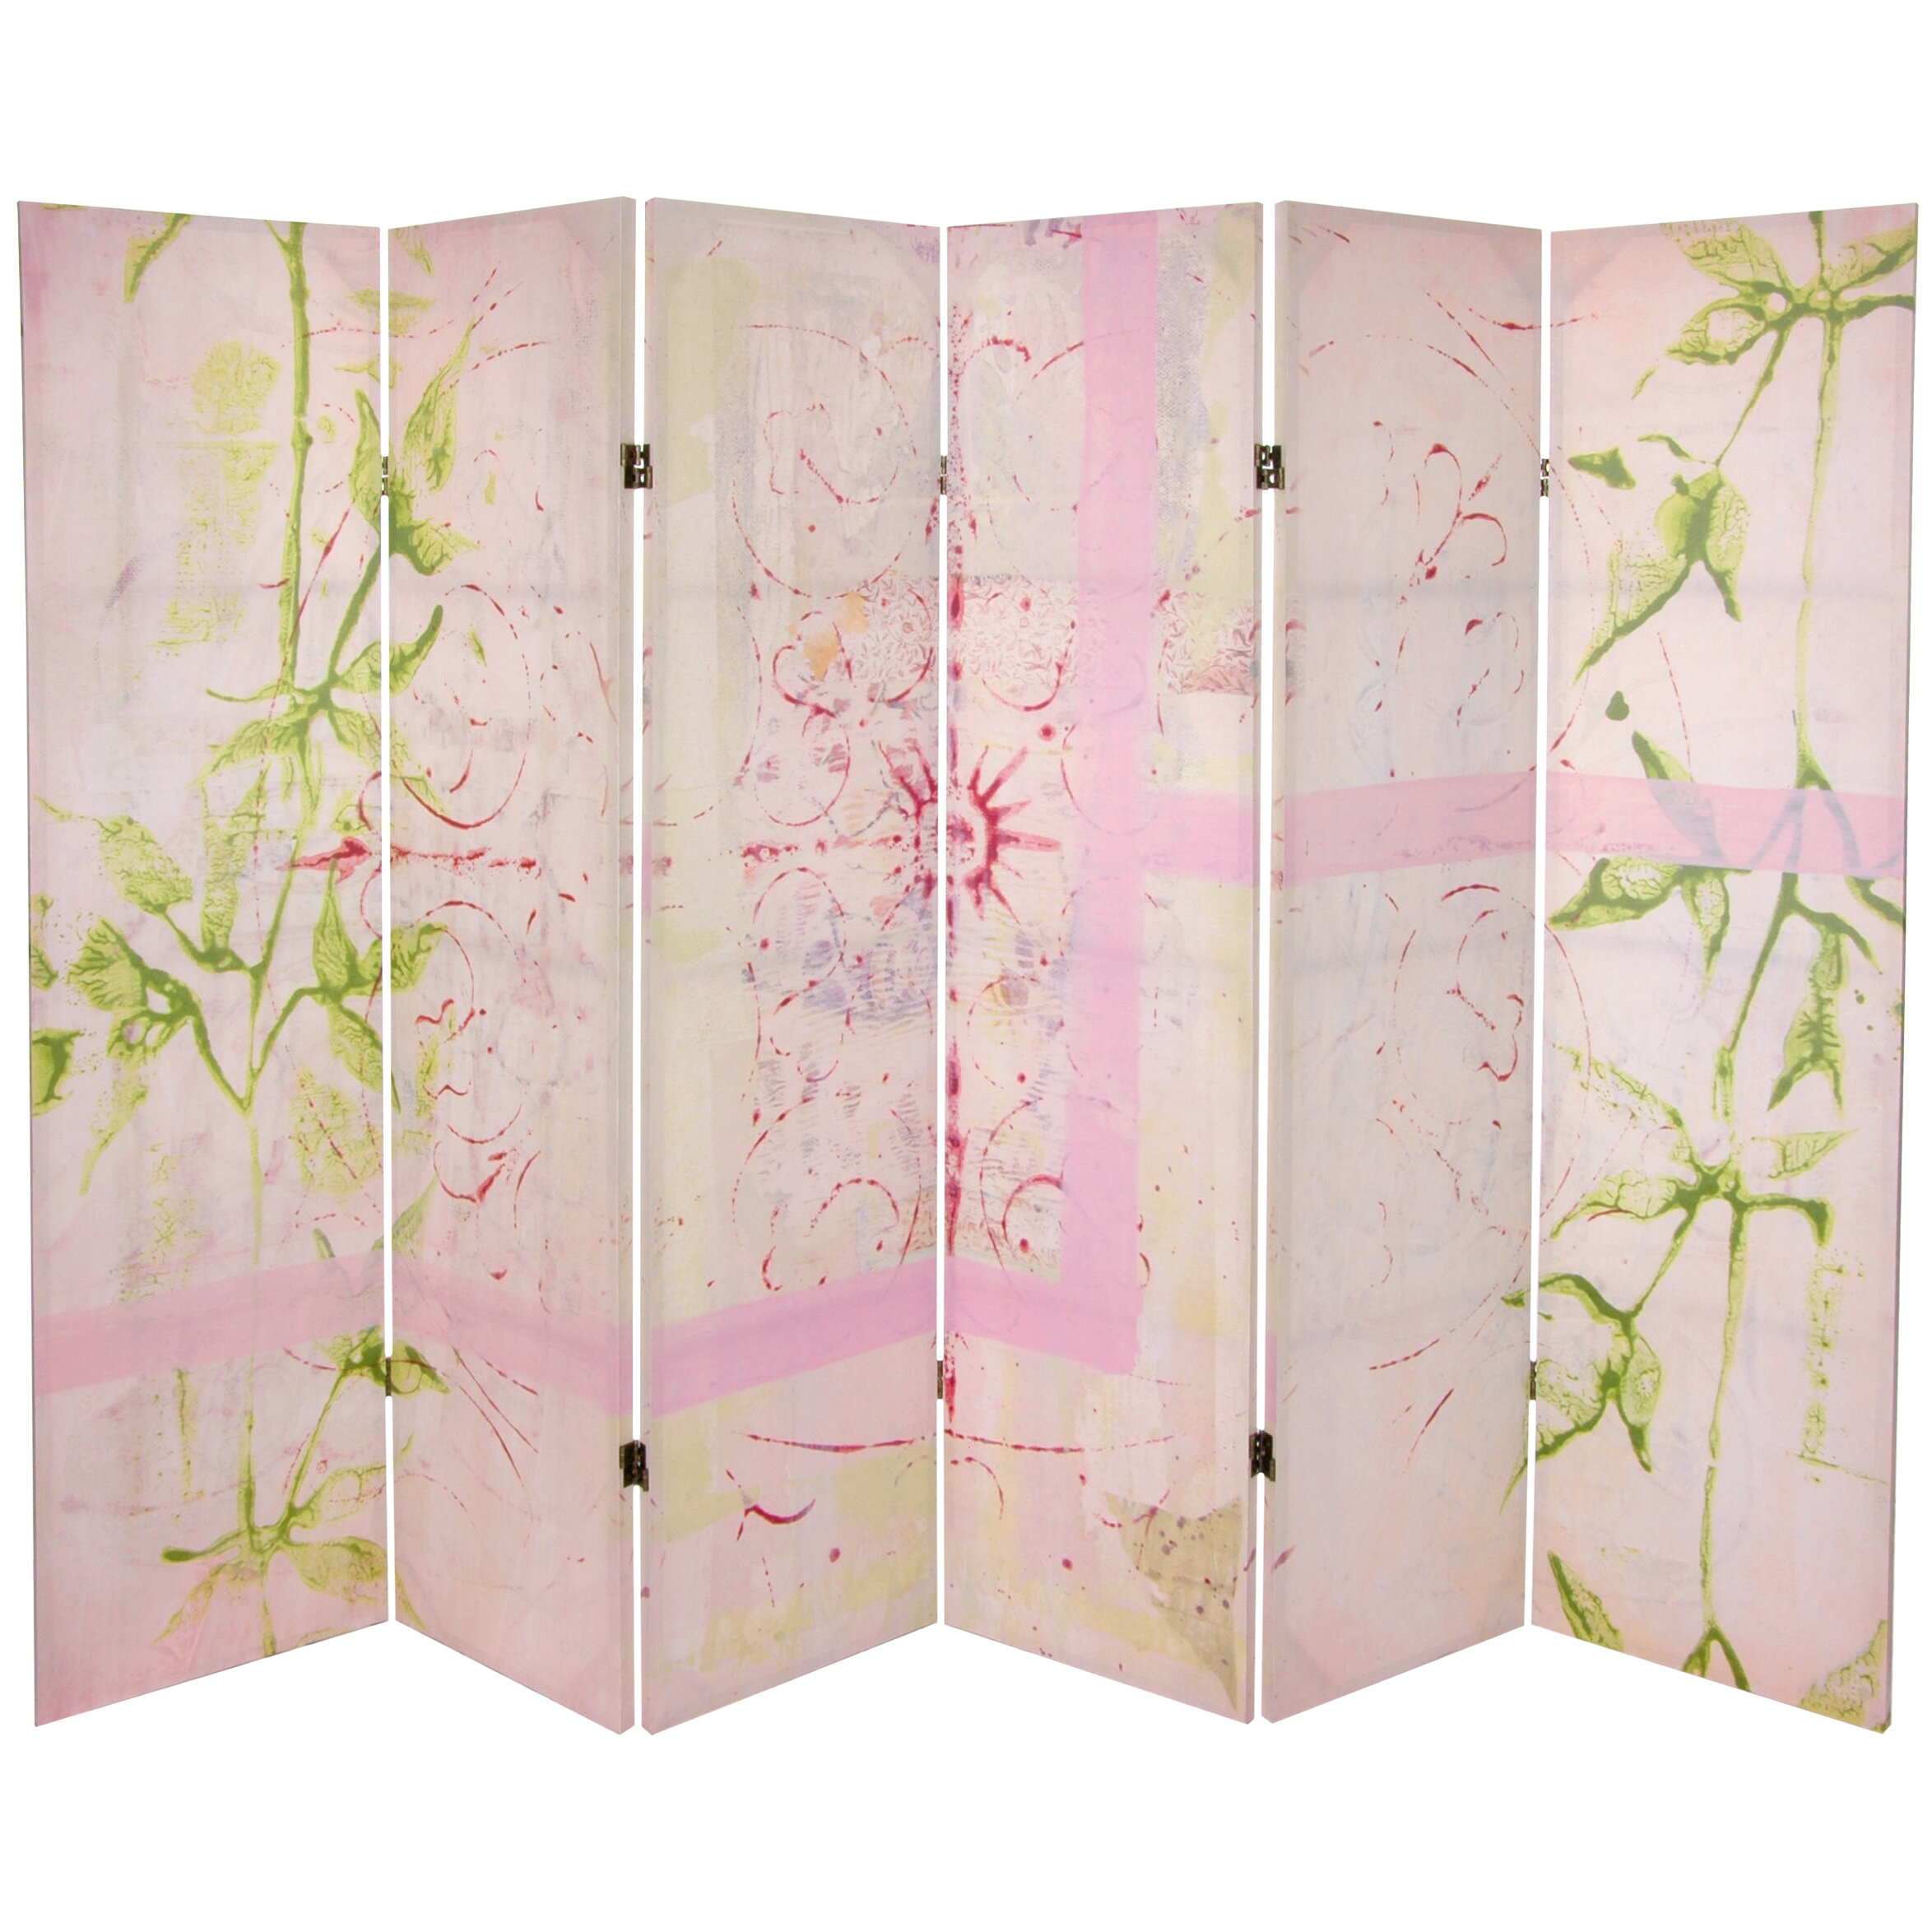 Terrific Eustacio 6 Panel Room Divider Download Free Architecture Designs Embacsunscenecom